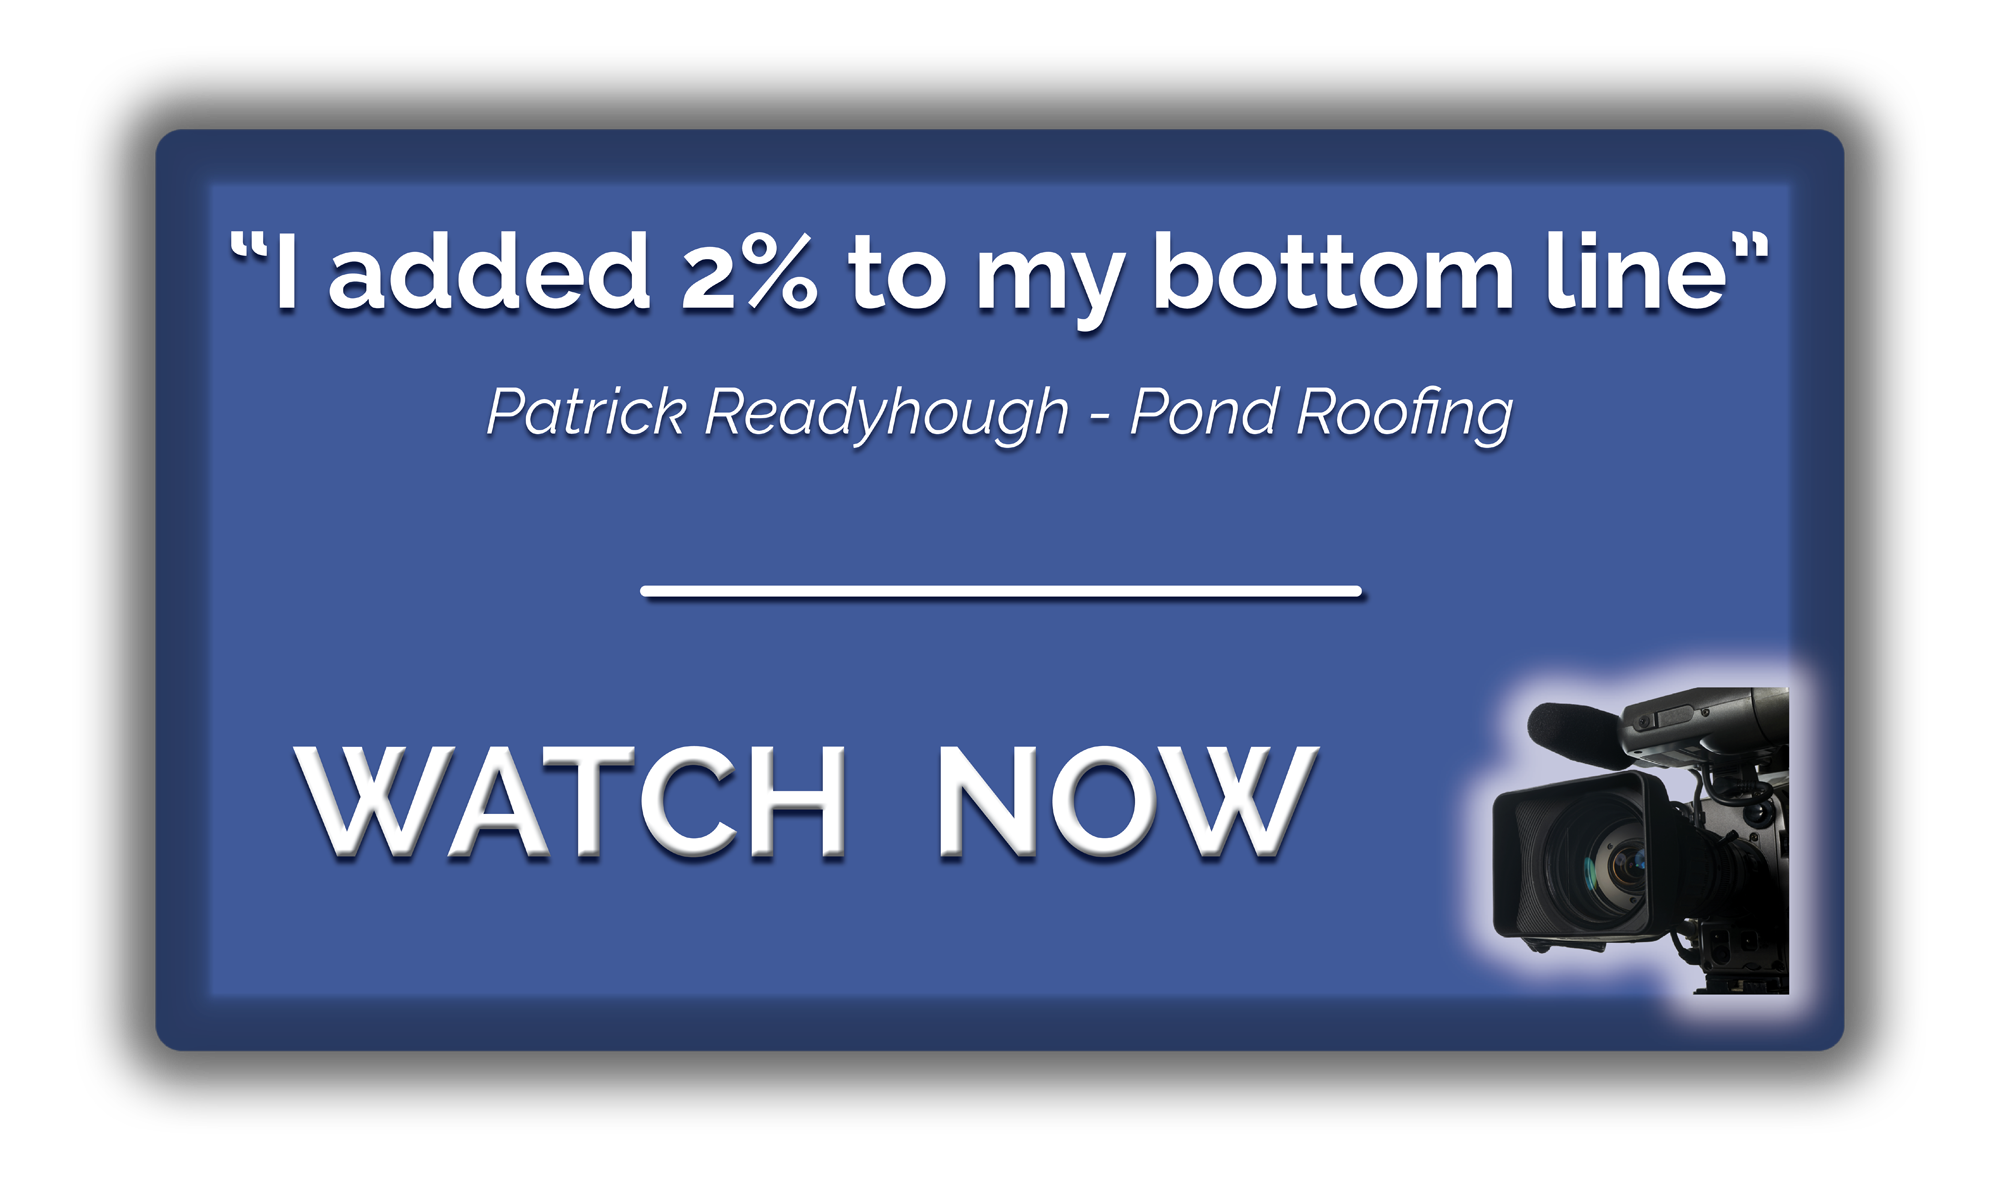 I-Added-2%-Patrick-Readyhough-Button